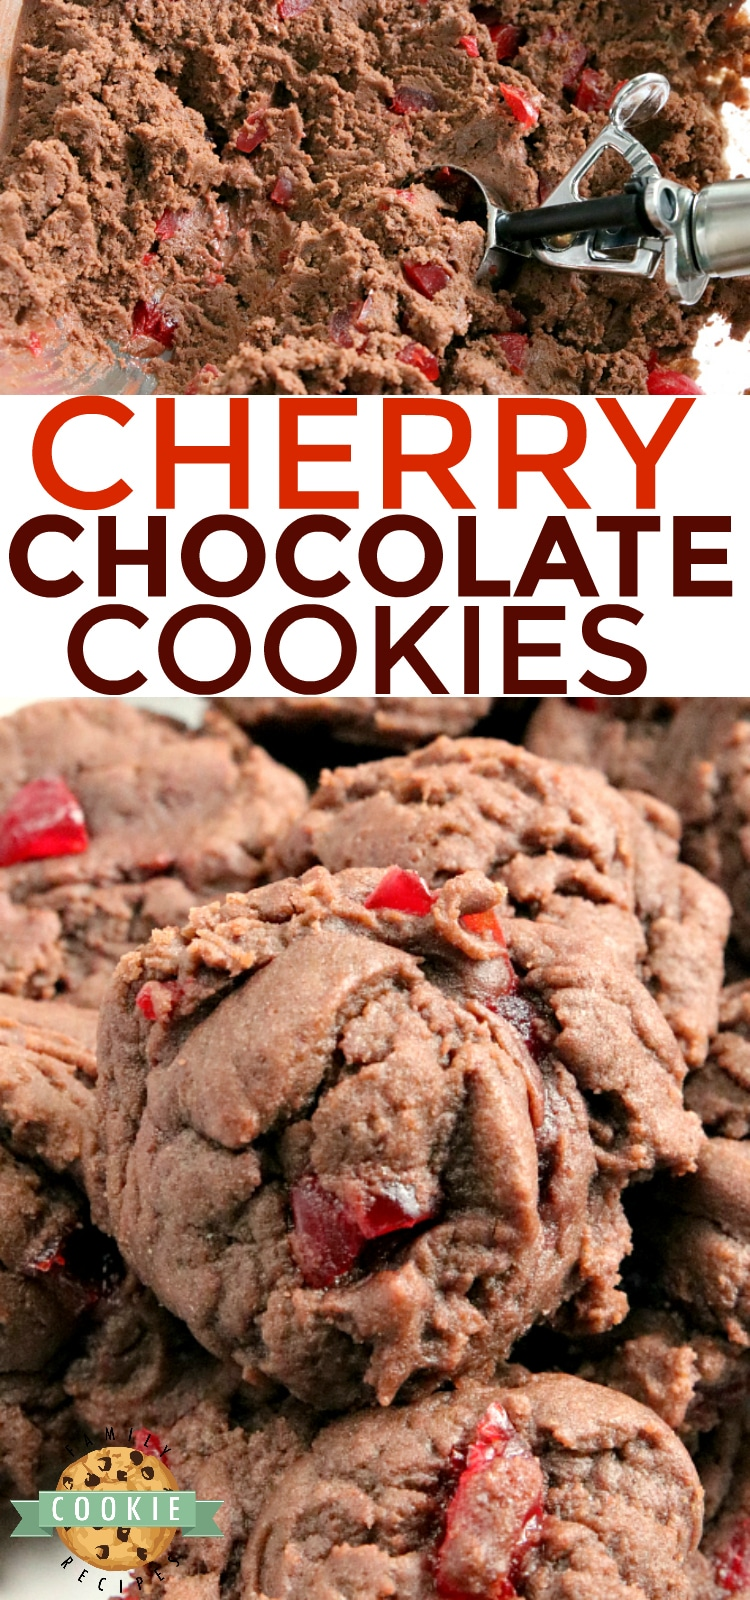 Cherry Chocolate Cookies are soft, chewy and full of cherries! There is chocolate pudding mix in these cookies which gives them the perfect flavor and consistency every time. via @familycookierecipes